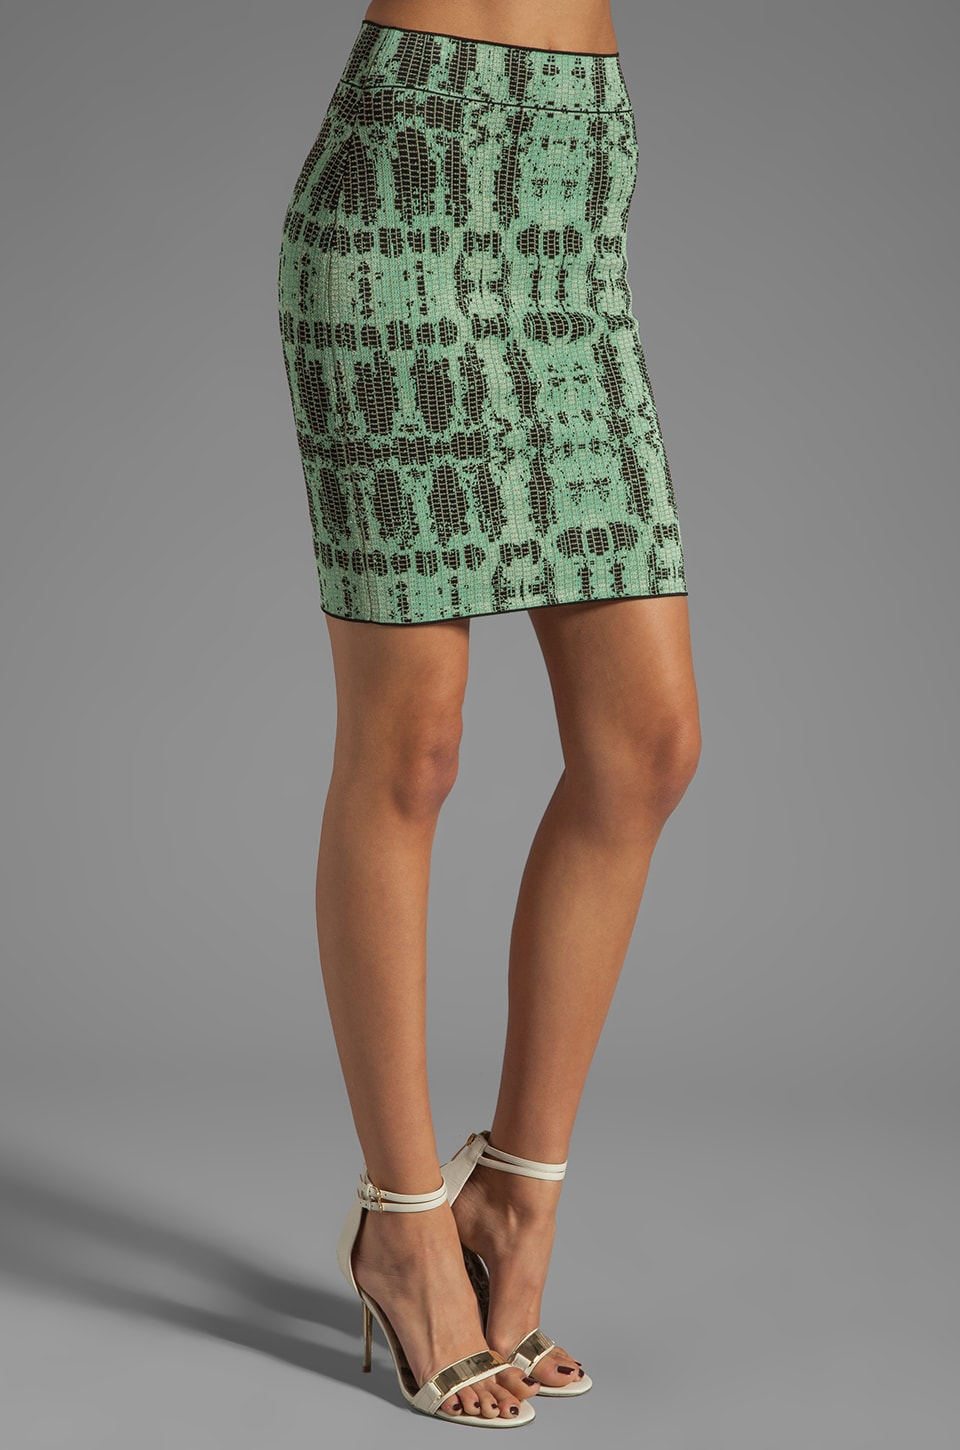 BCBGMAXAZRIA Printed Skirt in Kelly Green Combo